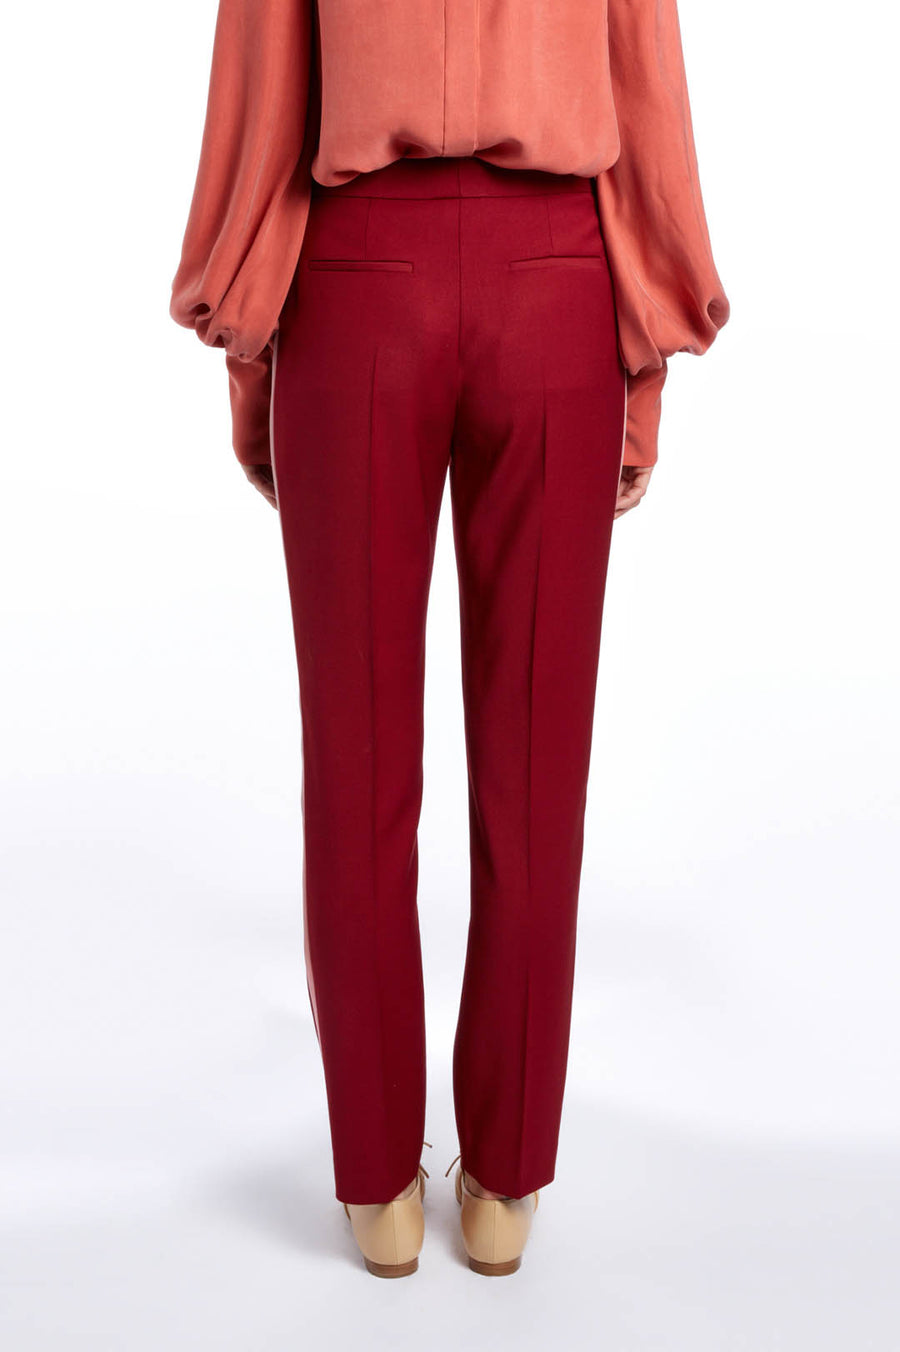 Amaranthus and Rose Colwyn Trouser